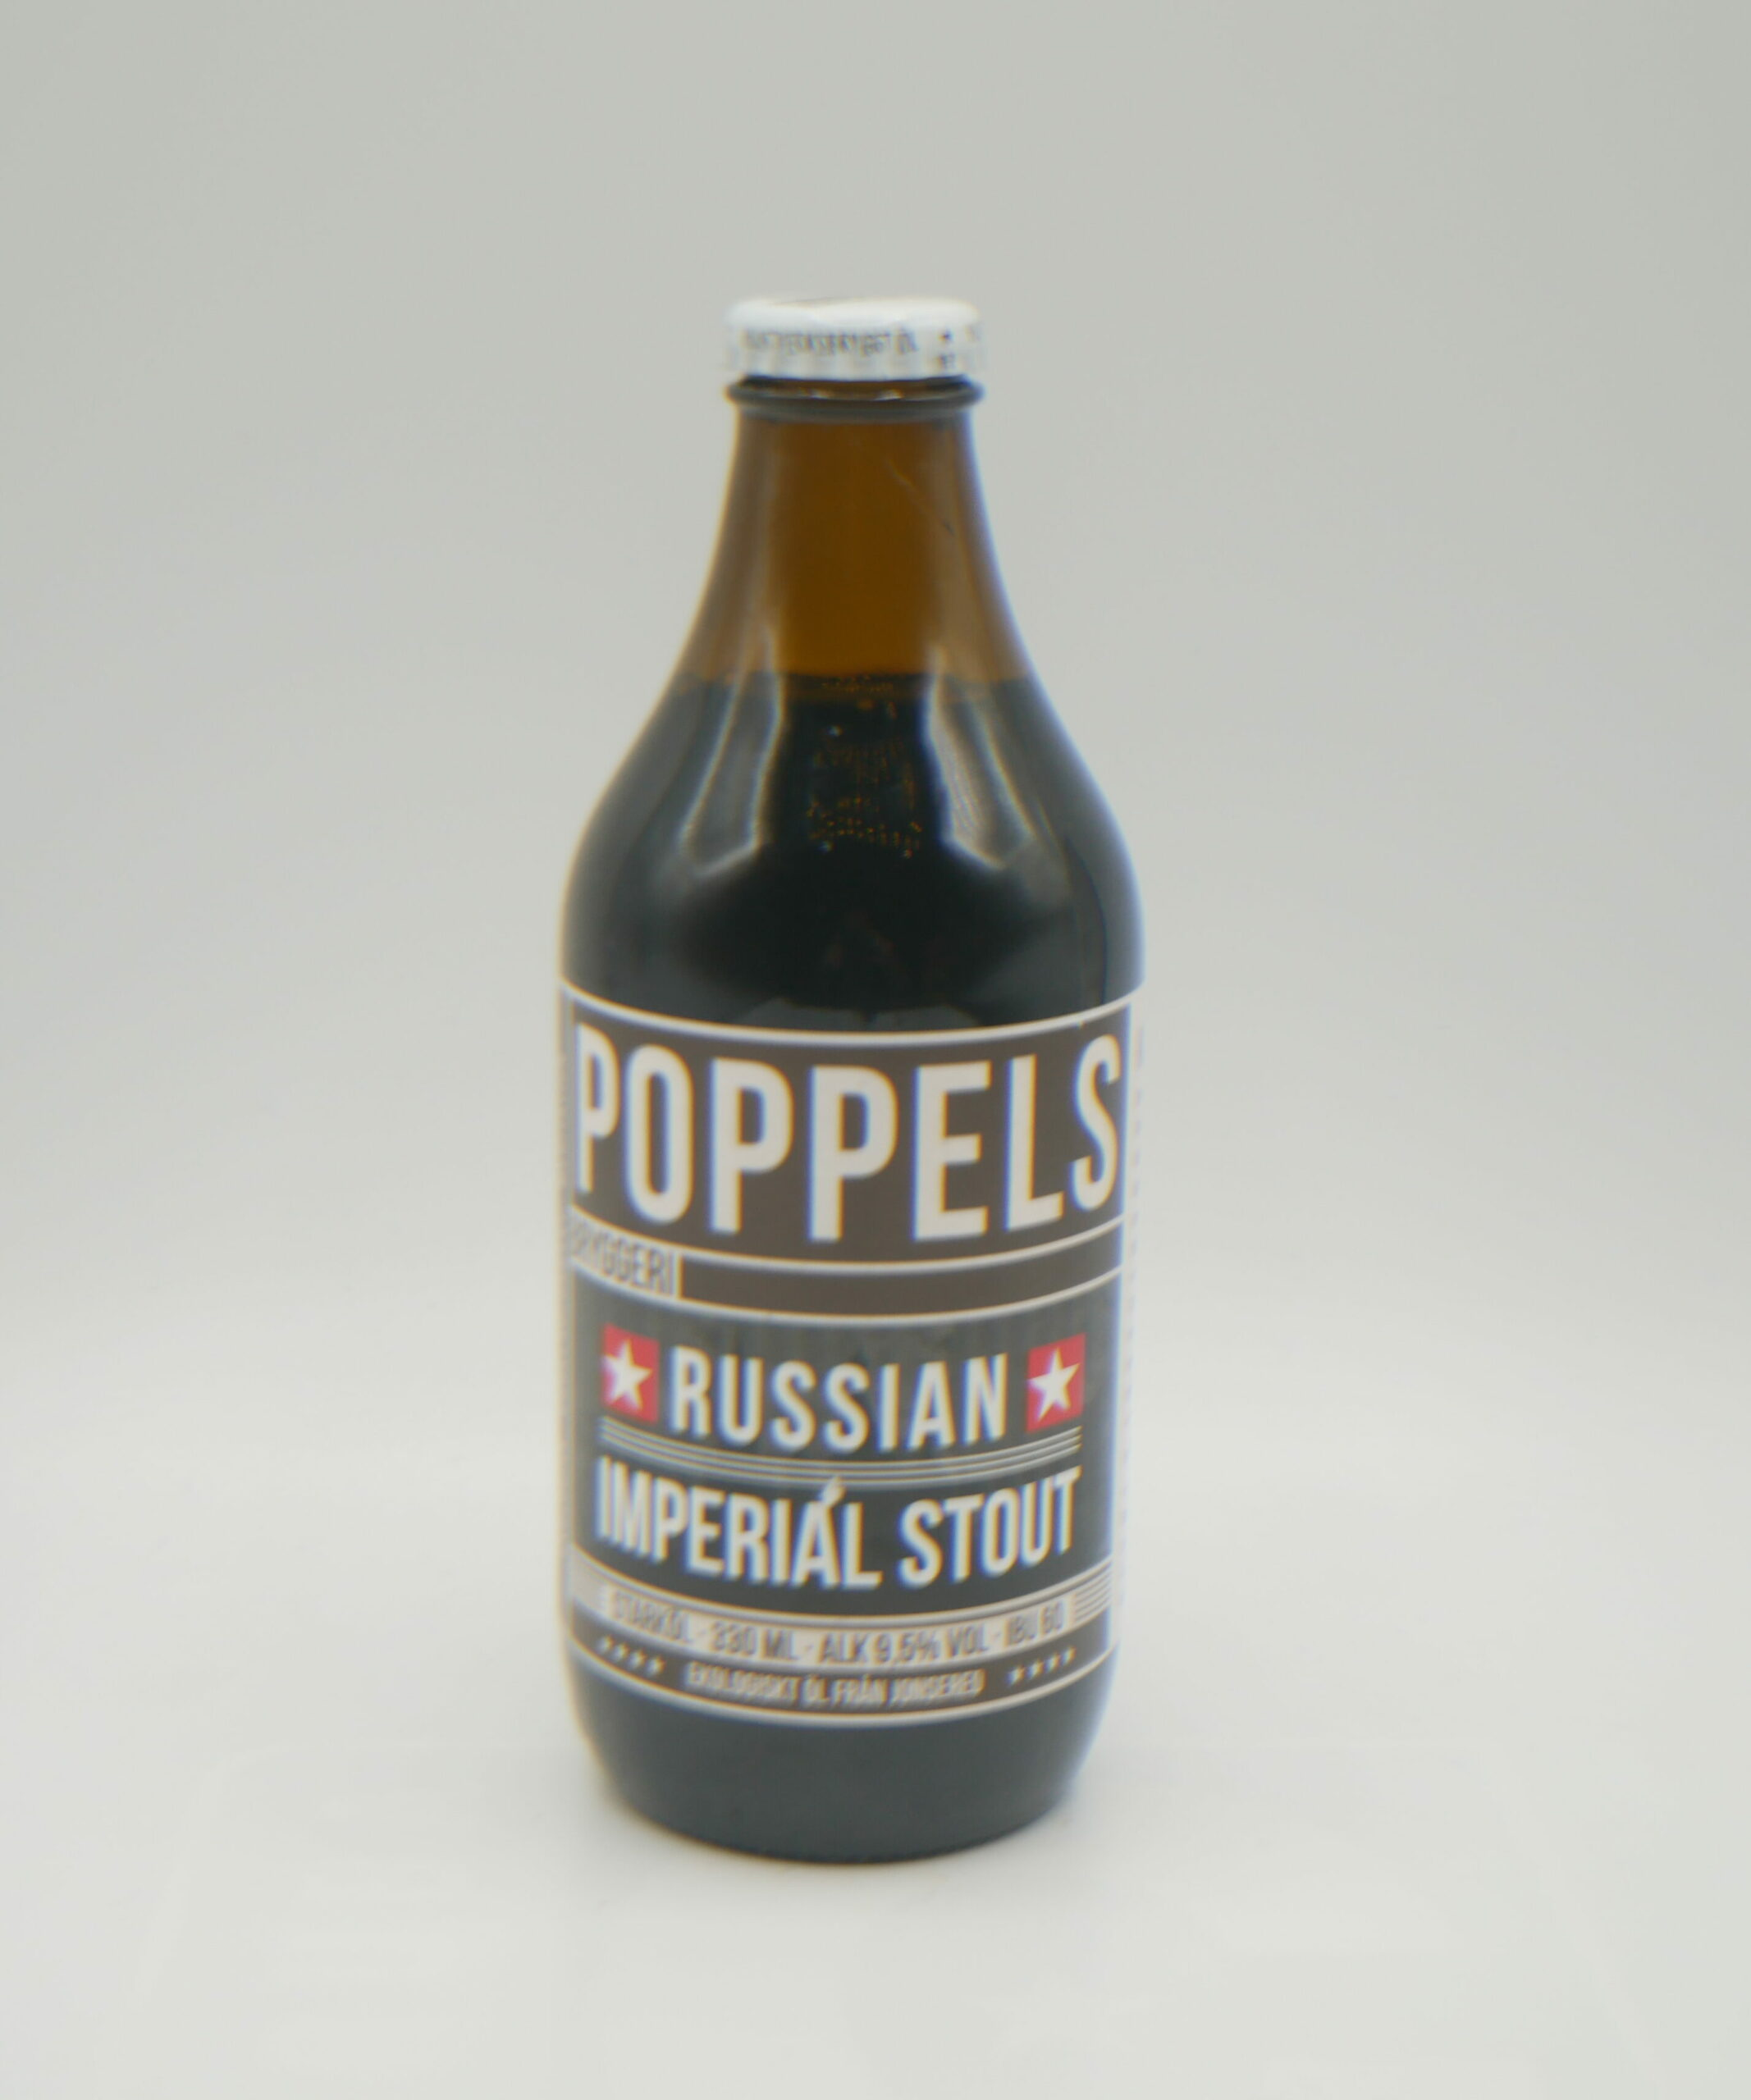 Img Poppels Imperial stout bbf 04122020